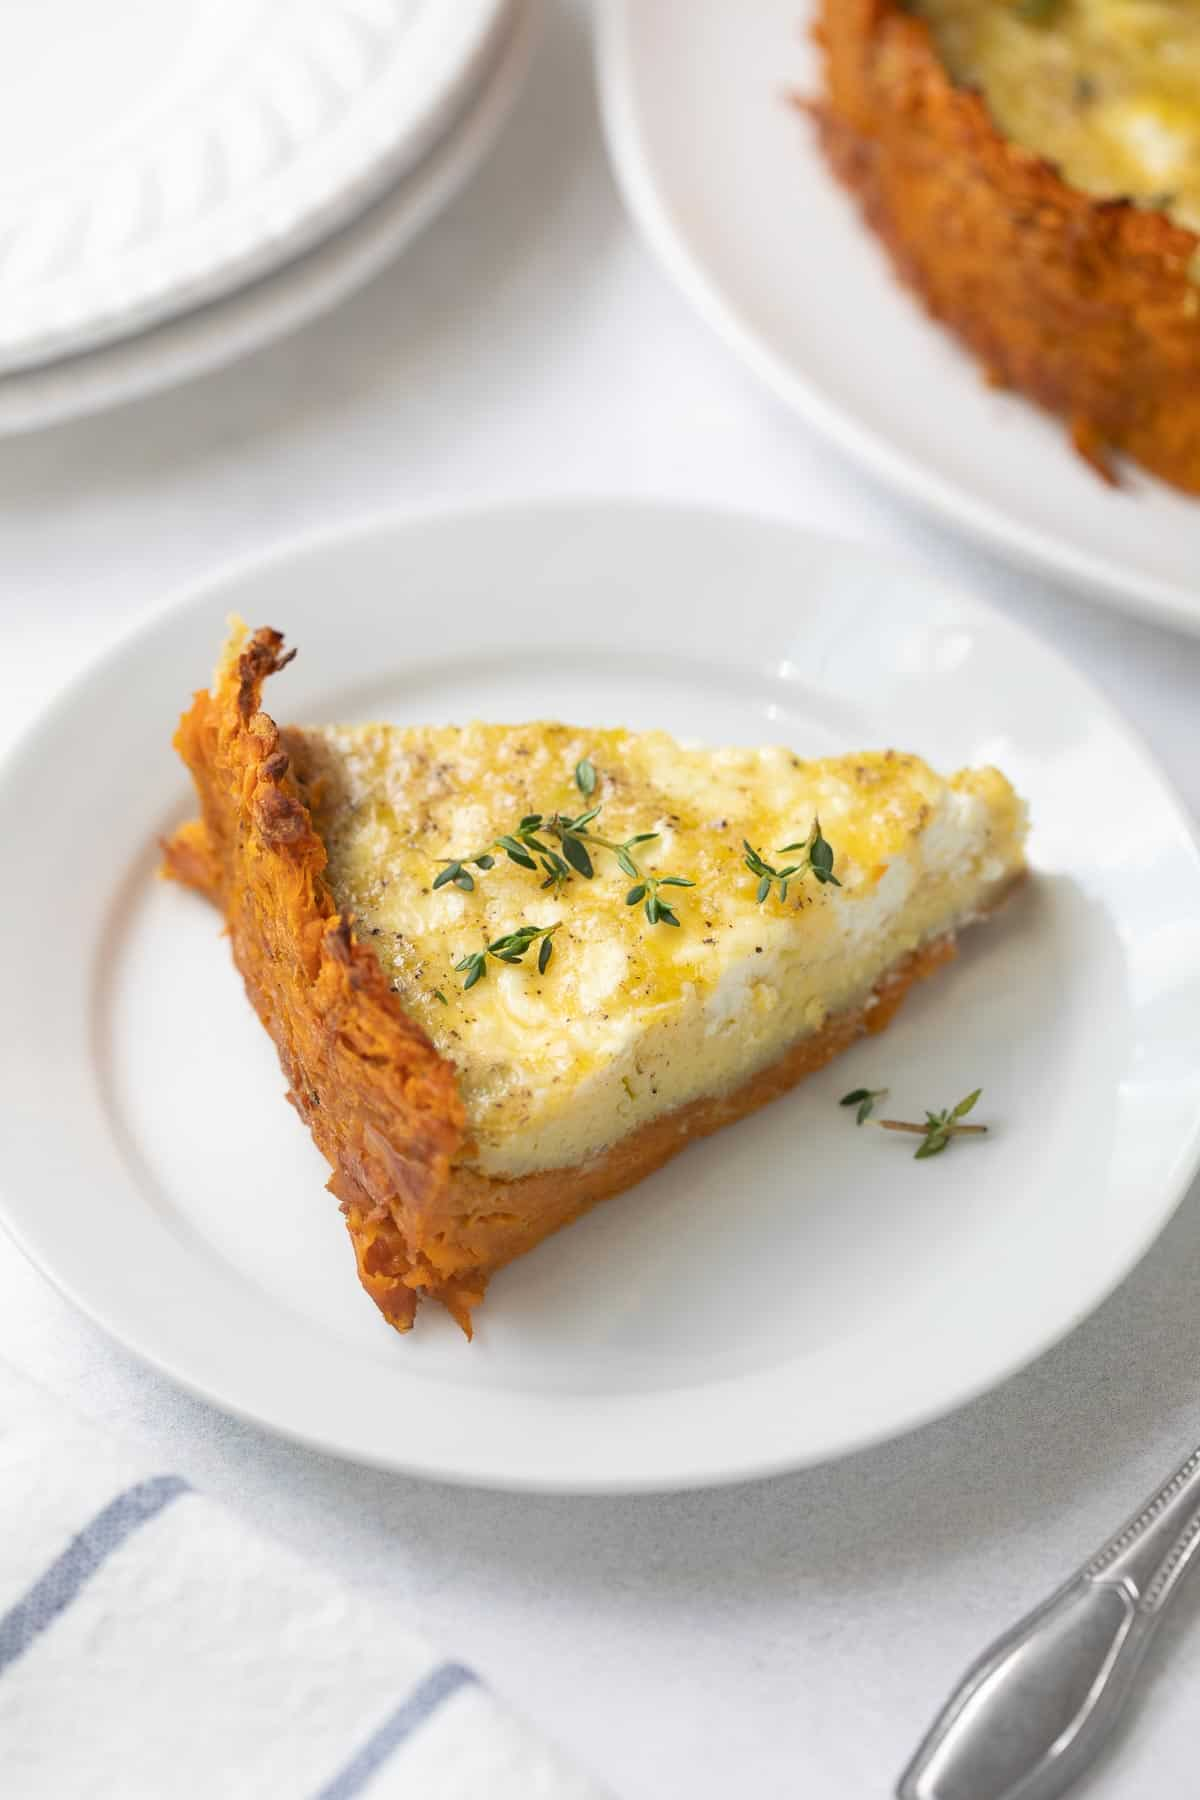 slice of goat cheese and leek quiche with sweet potato crust on a white plate